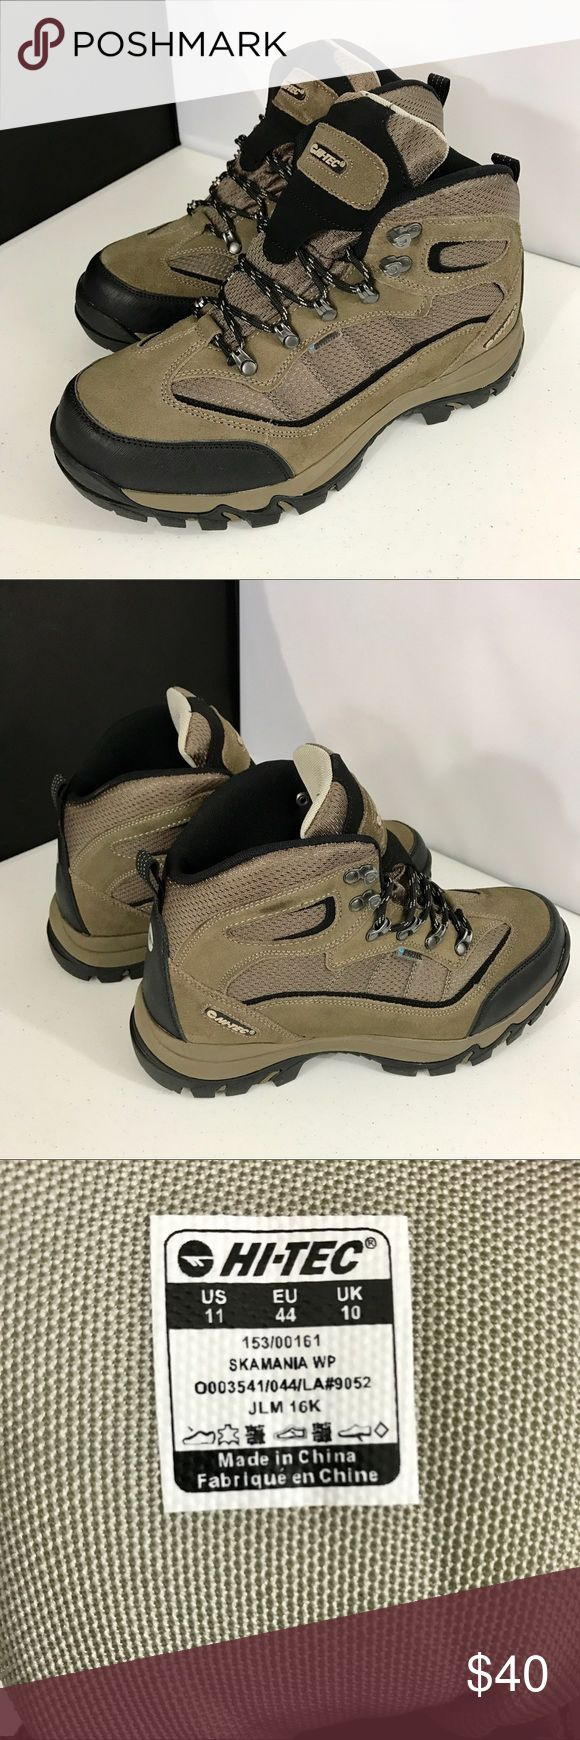 HI-TEC Skamania Waterproof Men's Hiking Boots 11 Waterproof suede leather and mesh upper. Dri-Tec waterproof, breathable membrane. Compression molded EVA midsole. Steel shank for support and stability. Multi-Directional traction carbon rubber outsold. Hi-Tec Shoes Boots